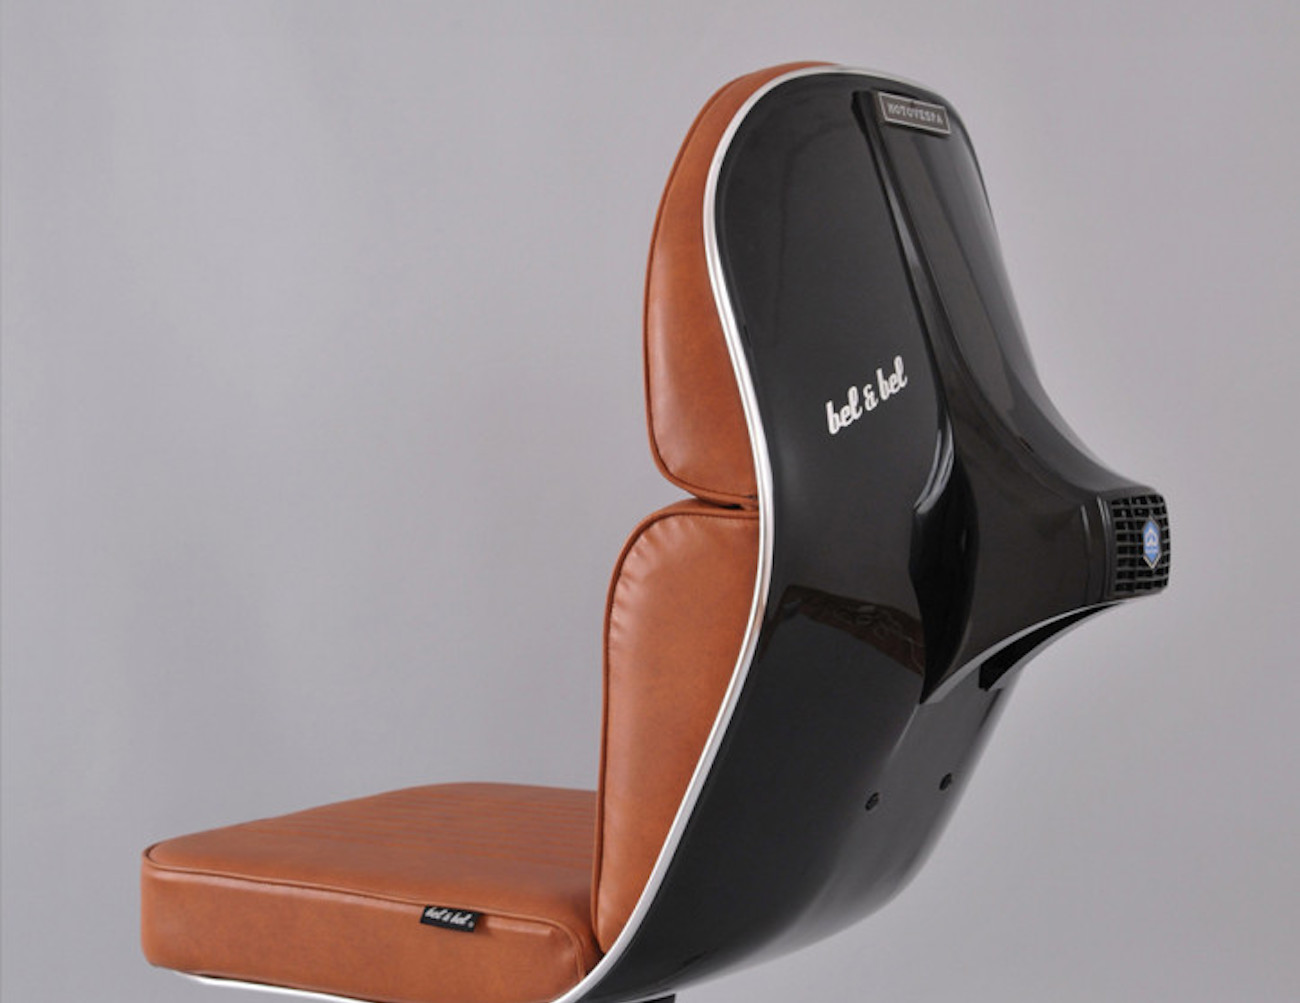 vespa-bv-12-chair-05